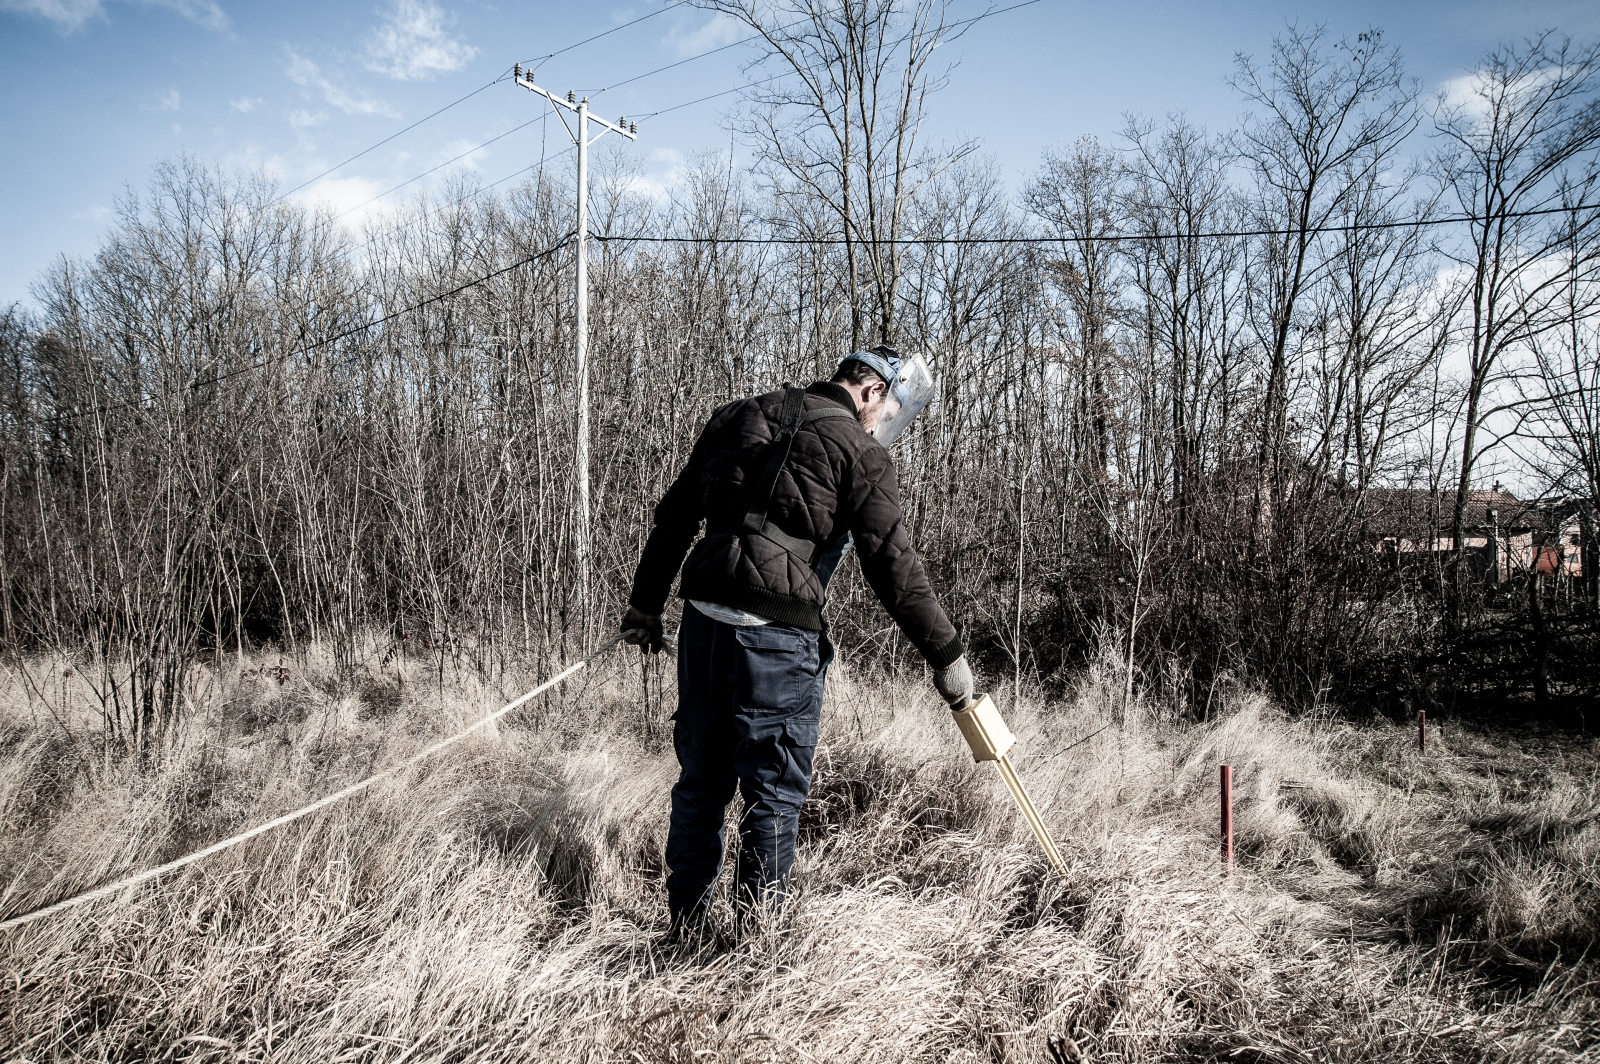 A de-miner at work in a minefield, with an area of 191.000 m², located next to the village of Kryshec. The mine clearance operation team in Kryshec is made of 16 people. December 2016.